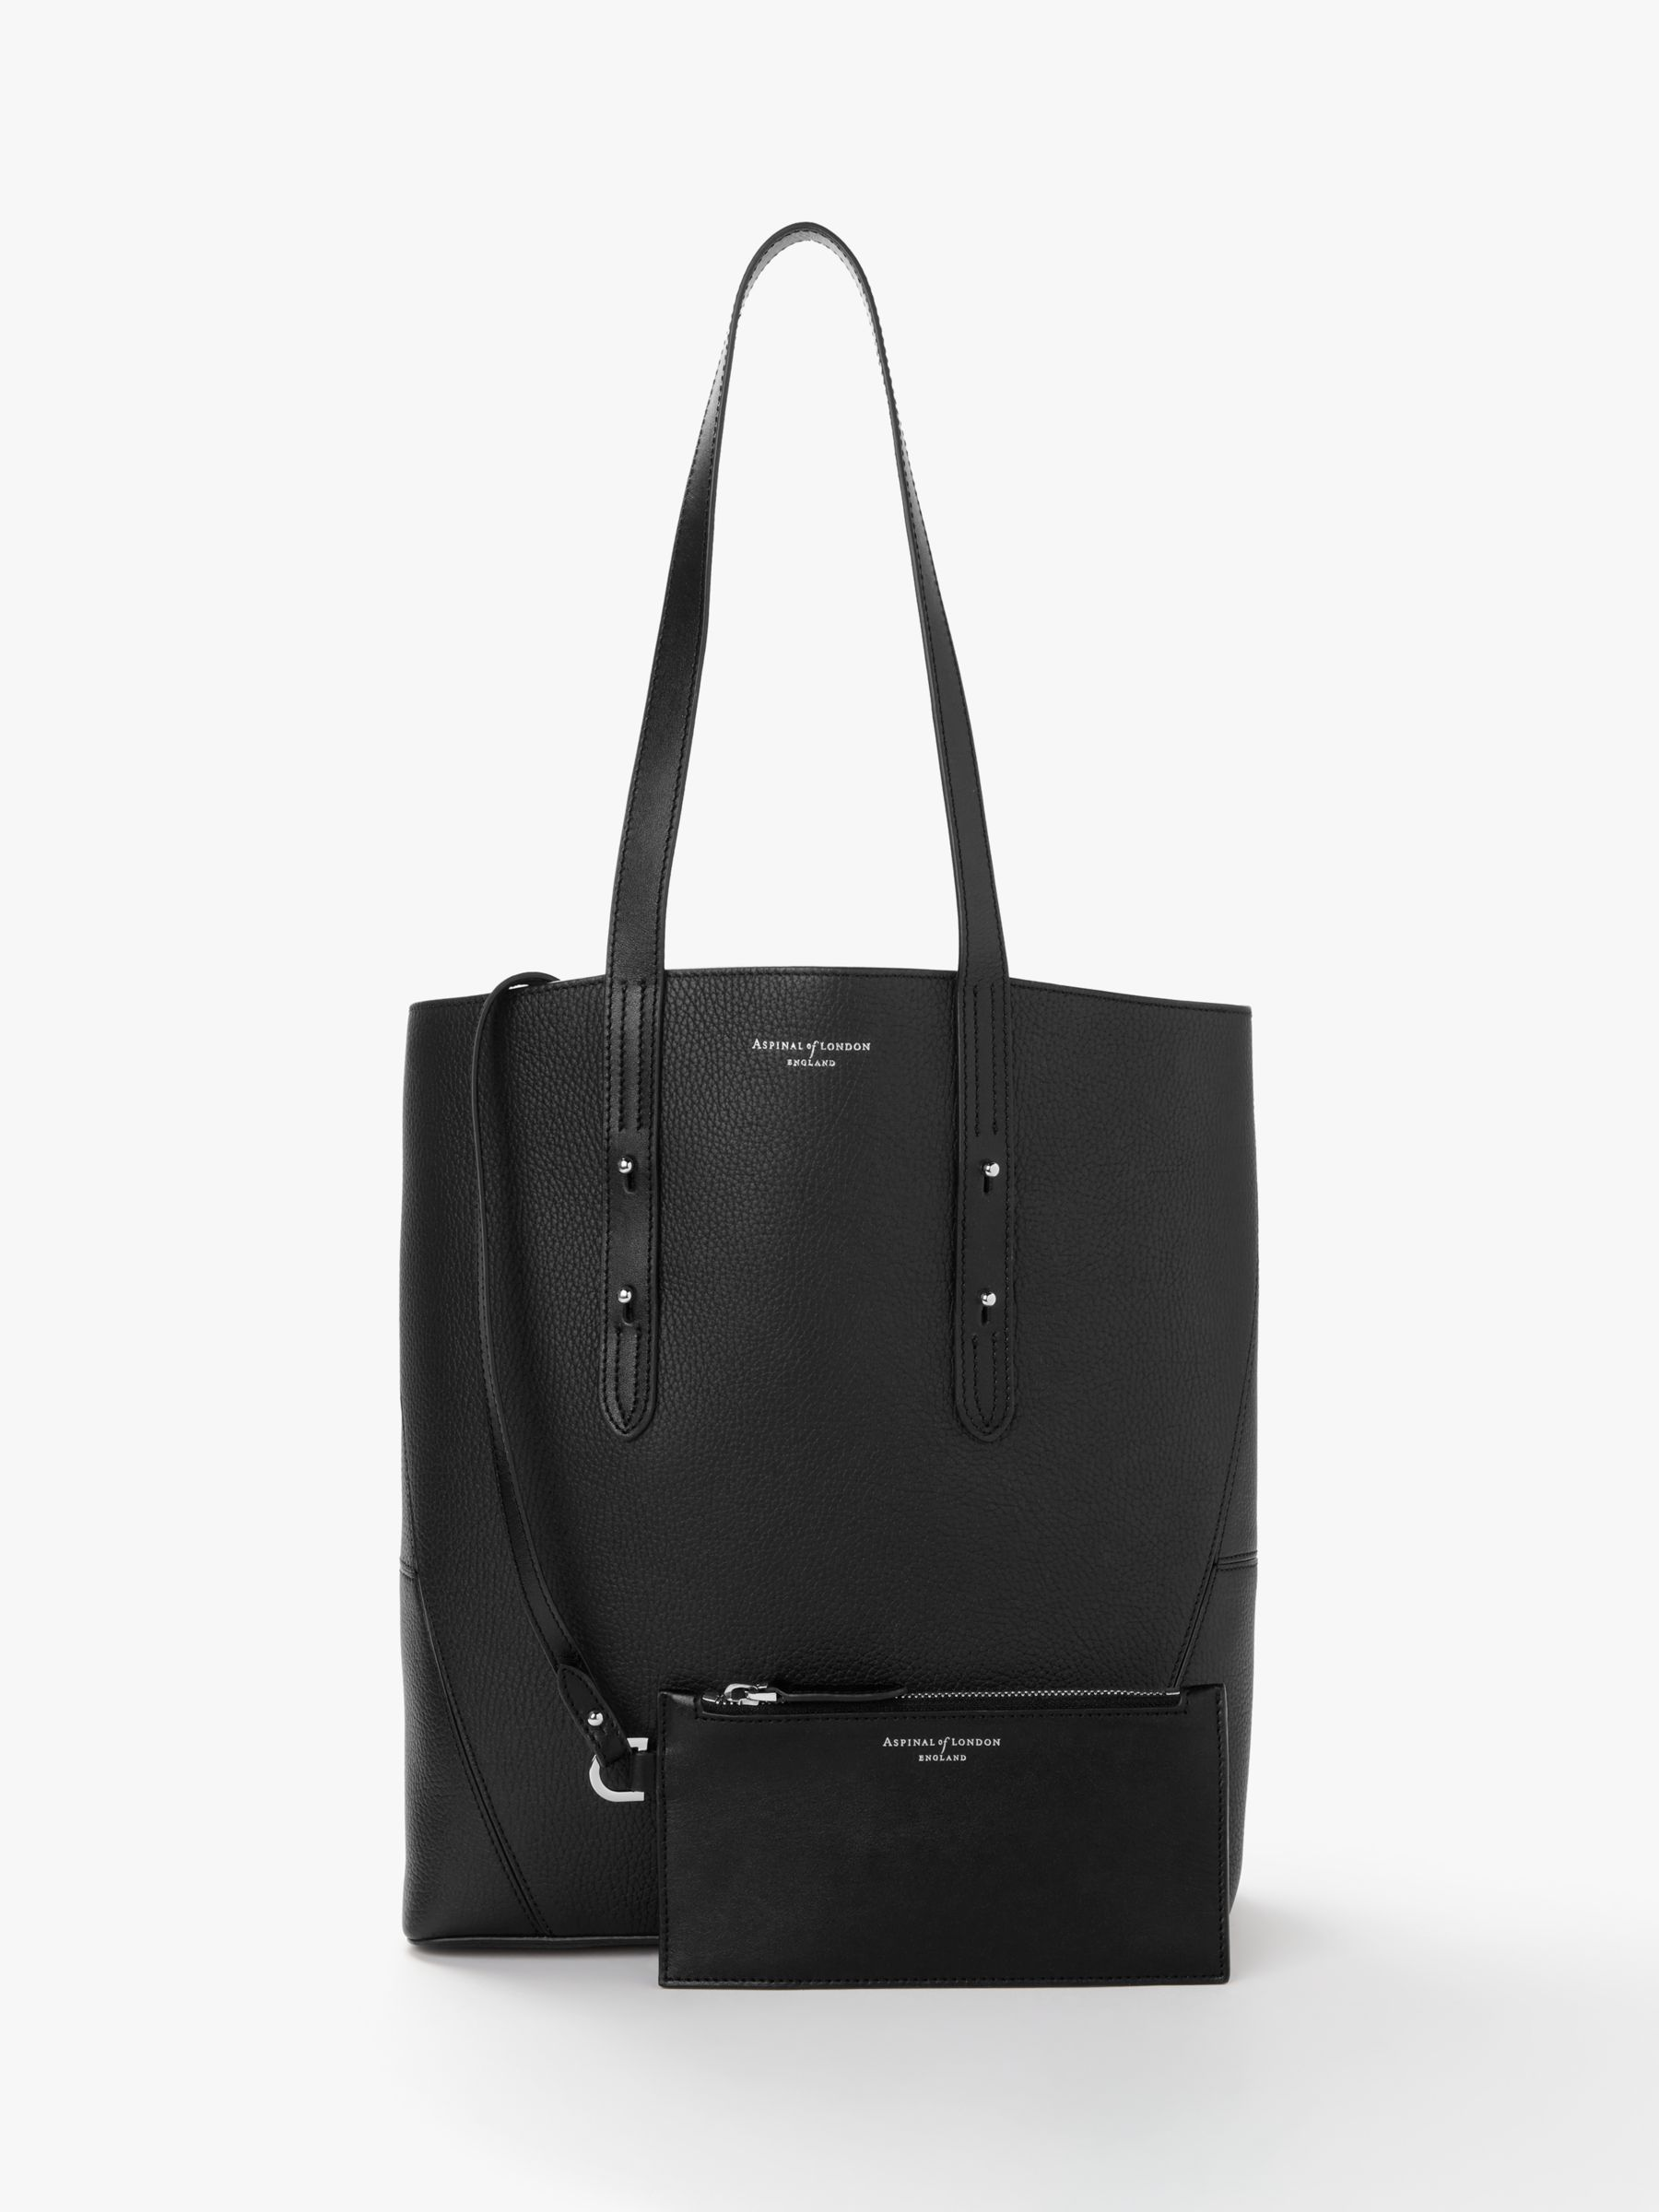 8d19f2e7895c Aspinal of London Essential Leather Tote Bag at John Lewis   Partners